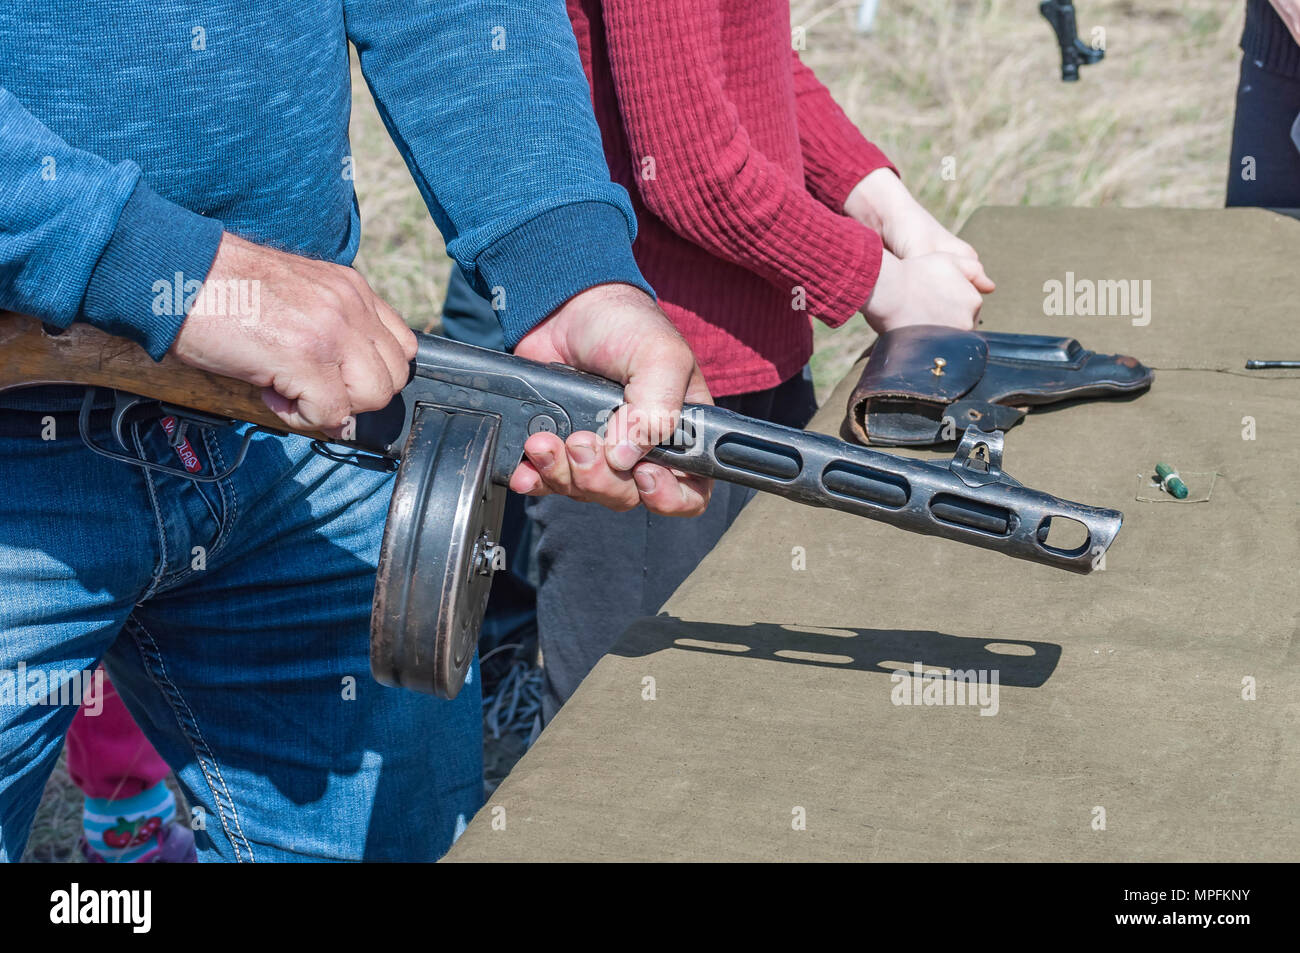 Training assembly of weapons for the reconstruction of the fighting of the Second World War. - Stock Image